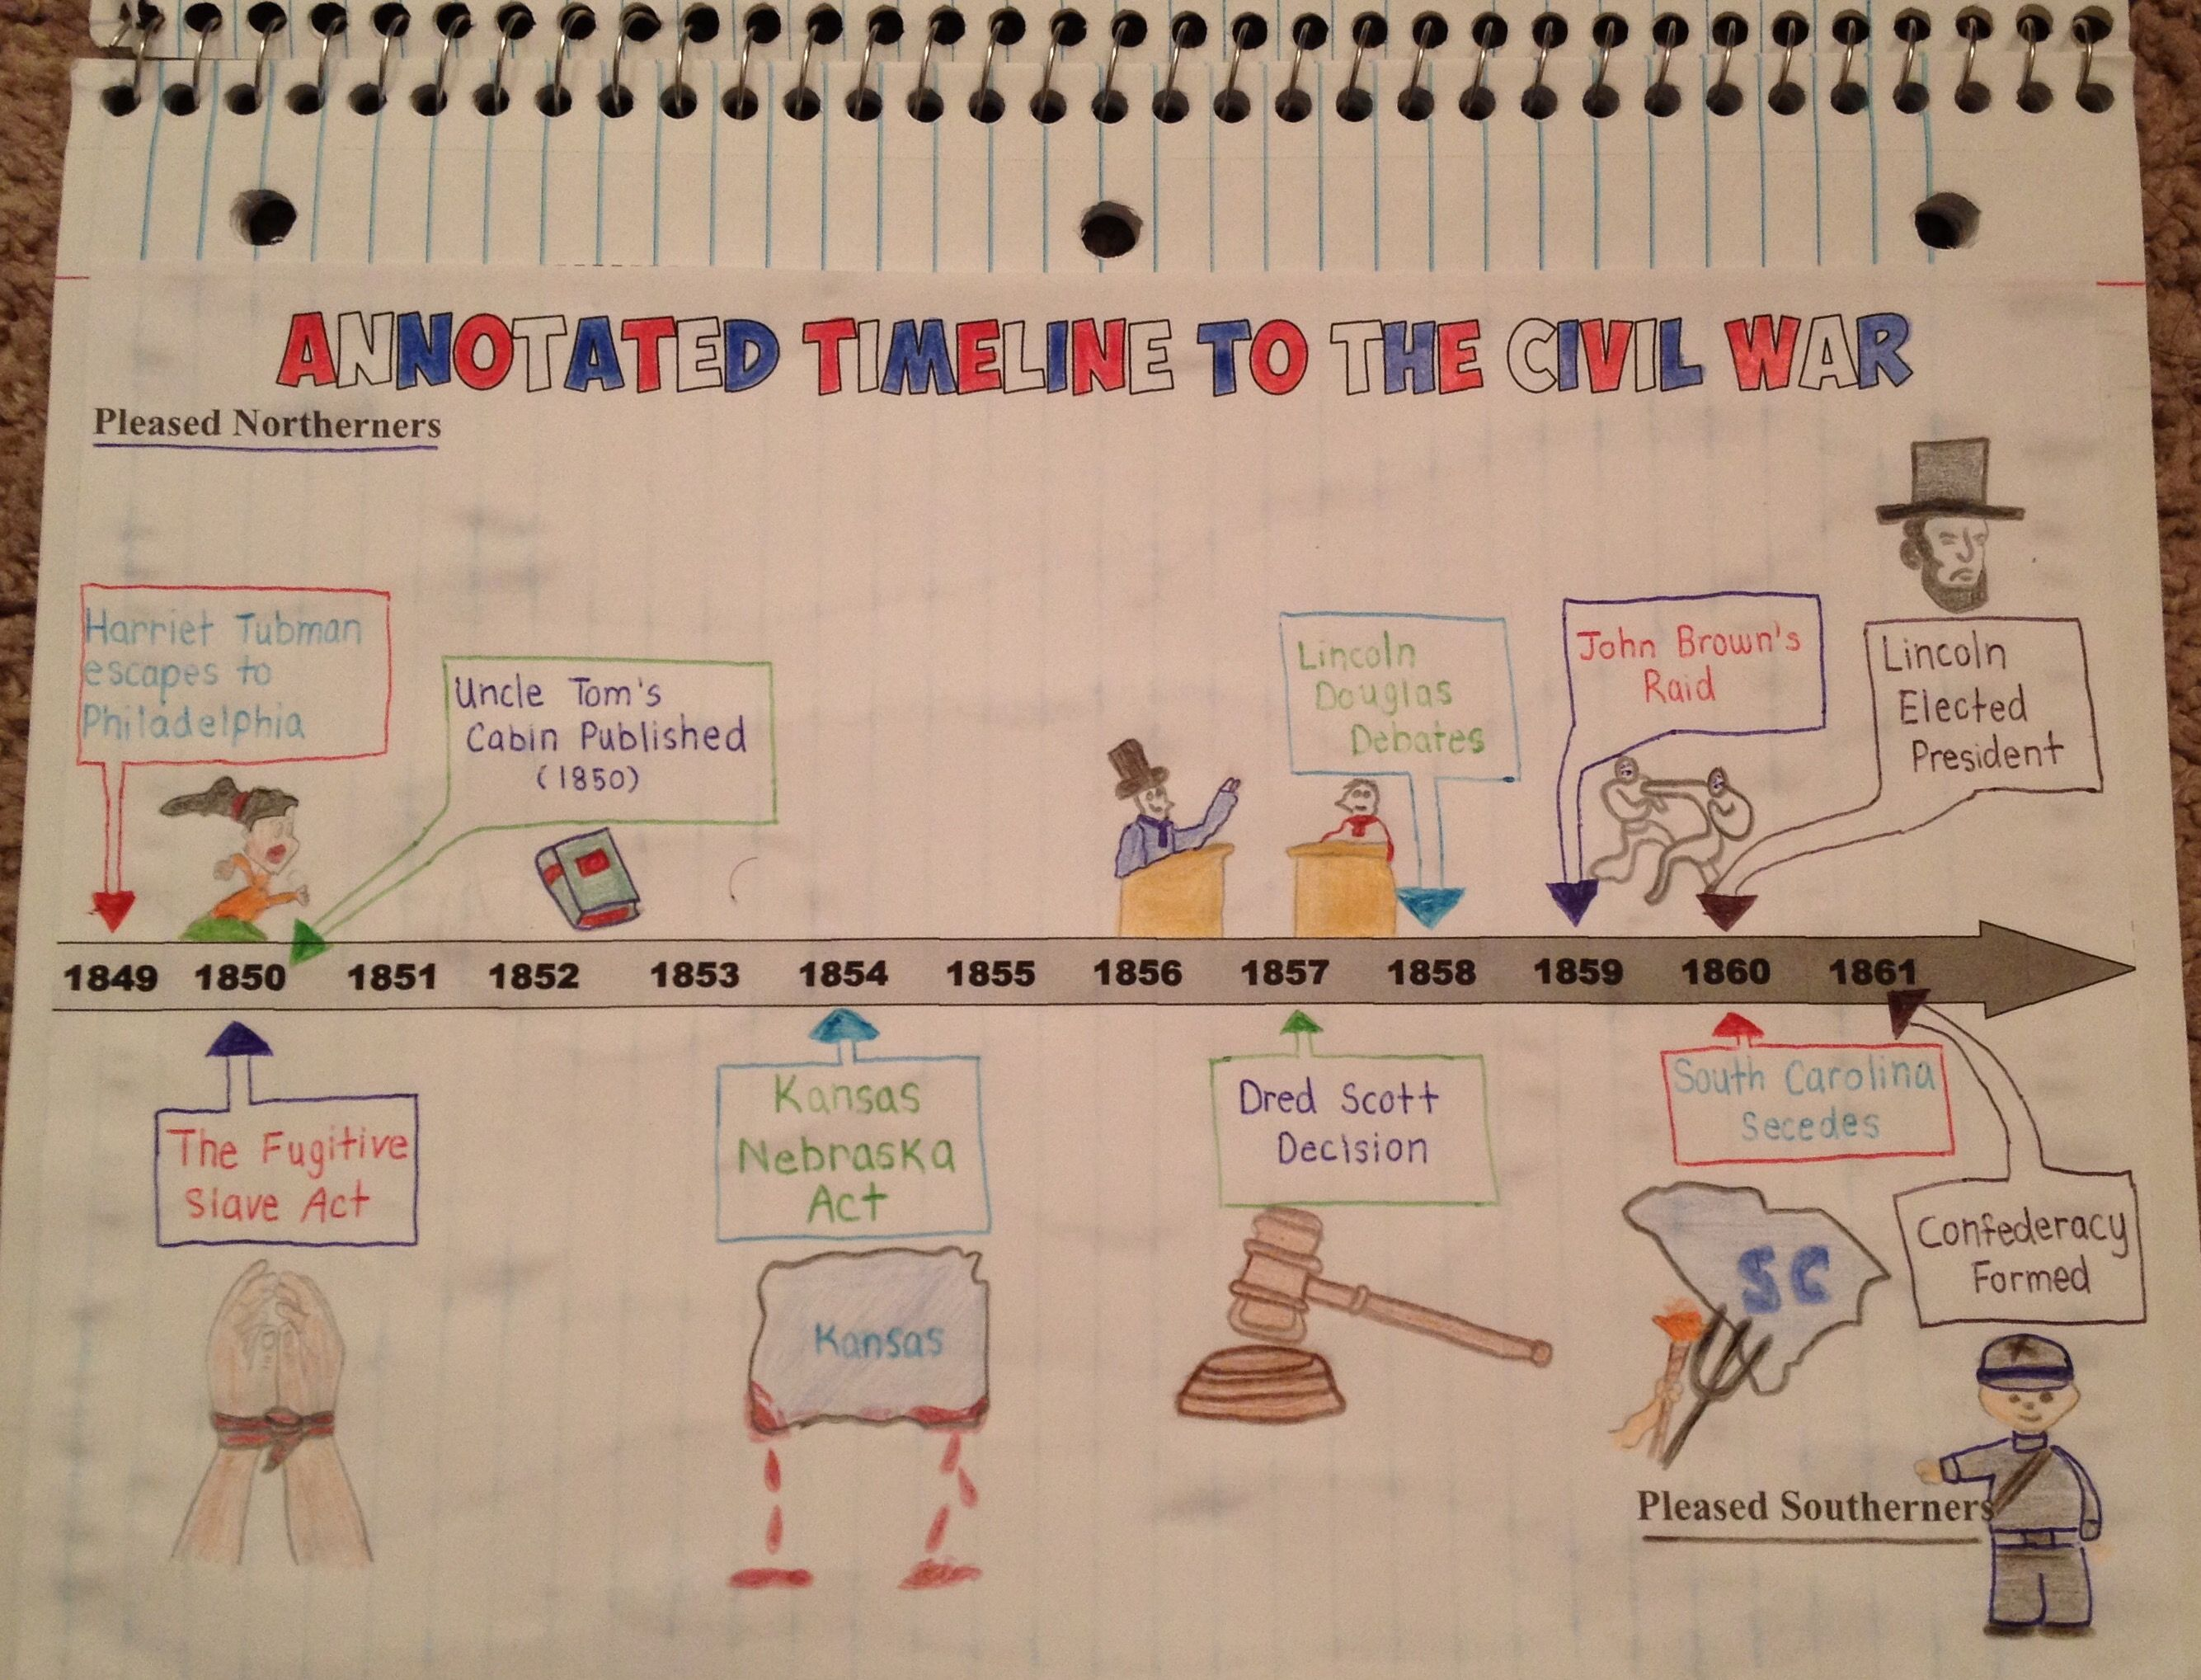 Worksheets Civil War Timeline Worksheet civil war timeline activity events leading to critical war